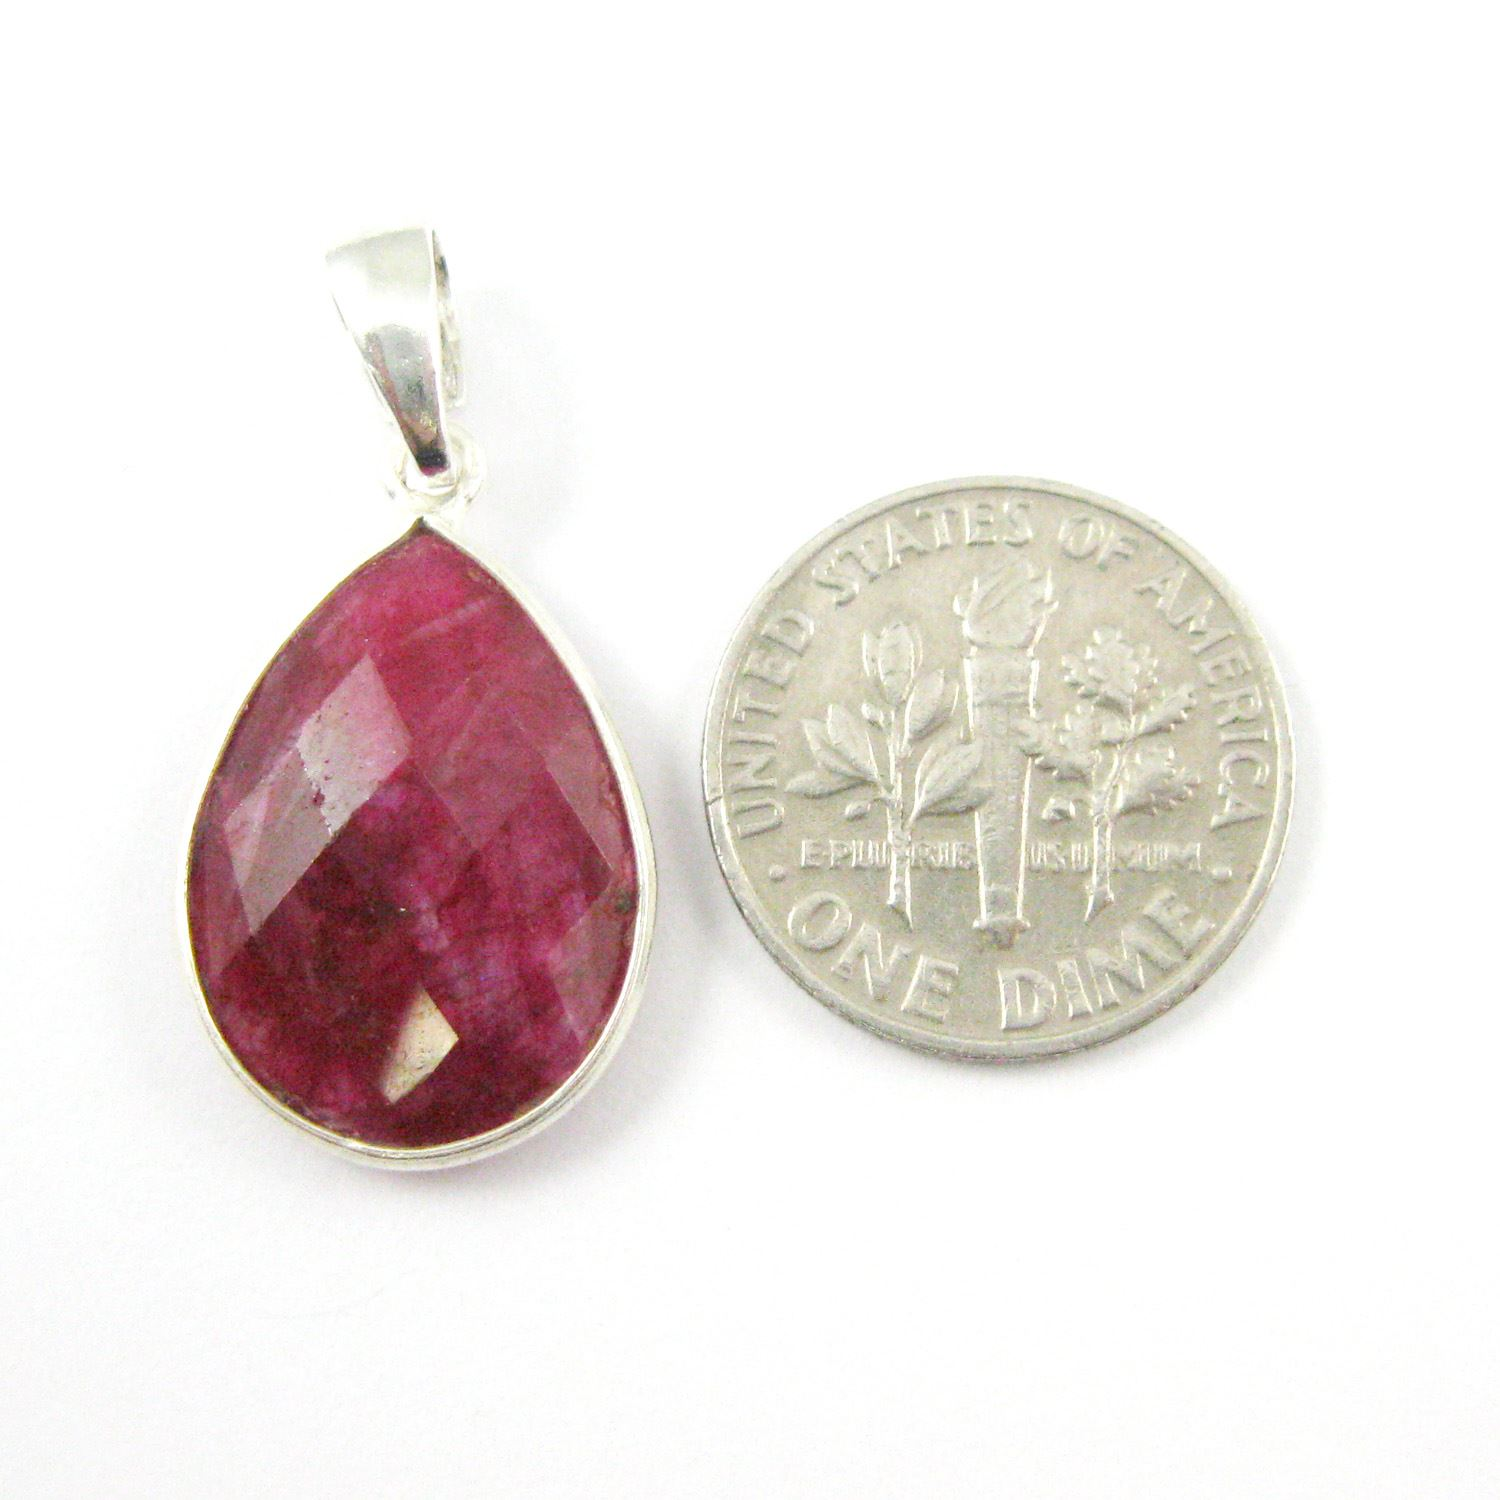 Bezel Gemstone Pendant with Bail - Sterling Silver Teardrop Gem Pendant - Ready for Necklace - 29mm - Ruby Dyed